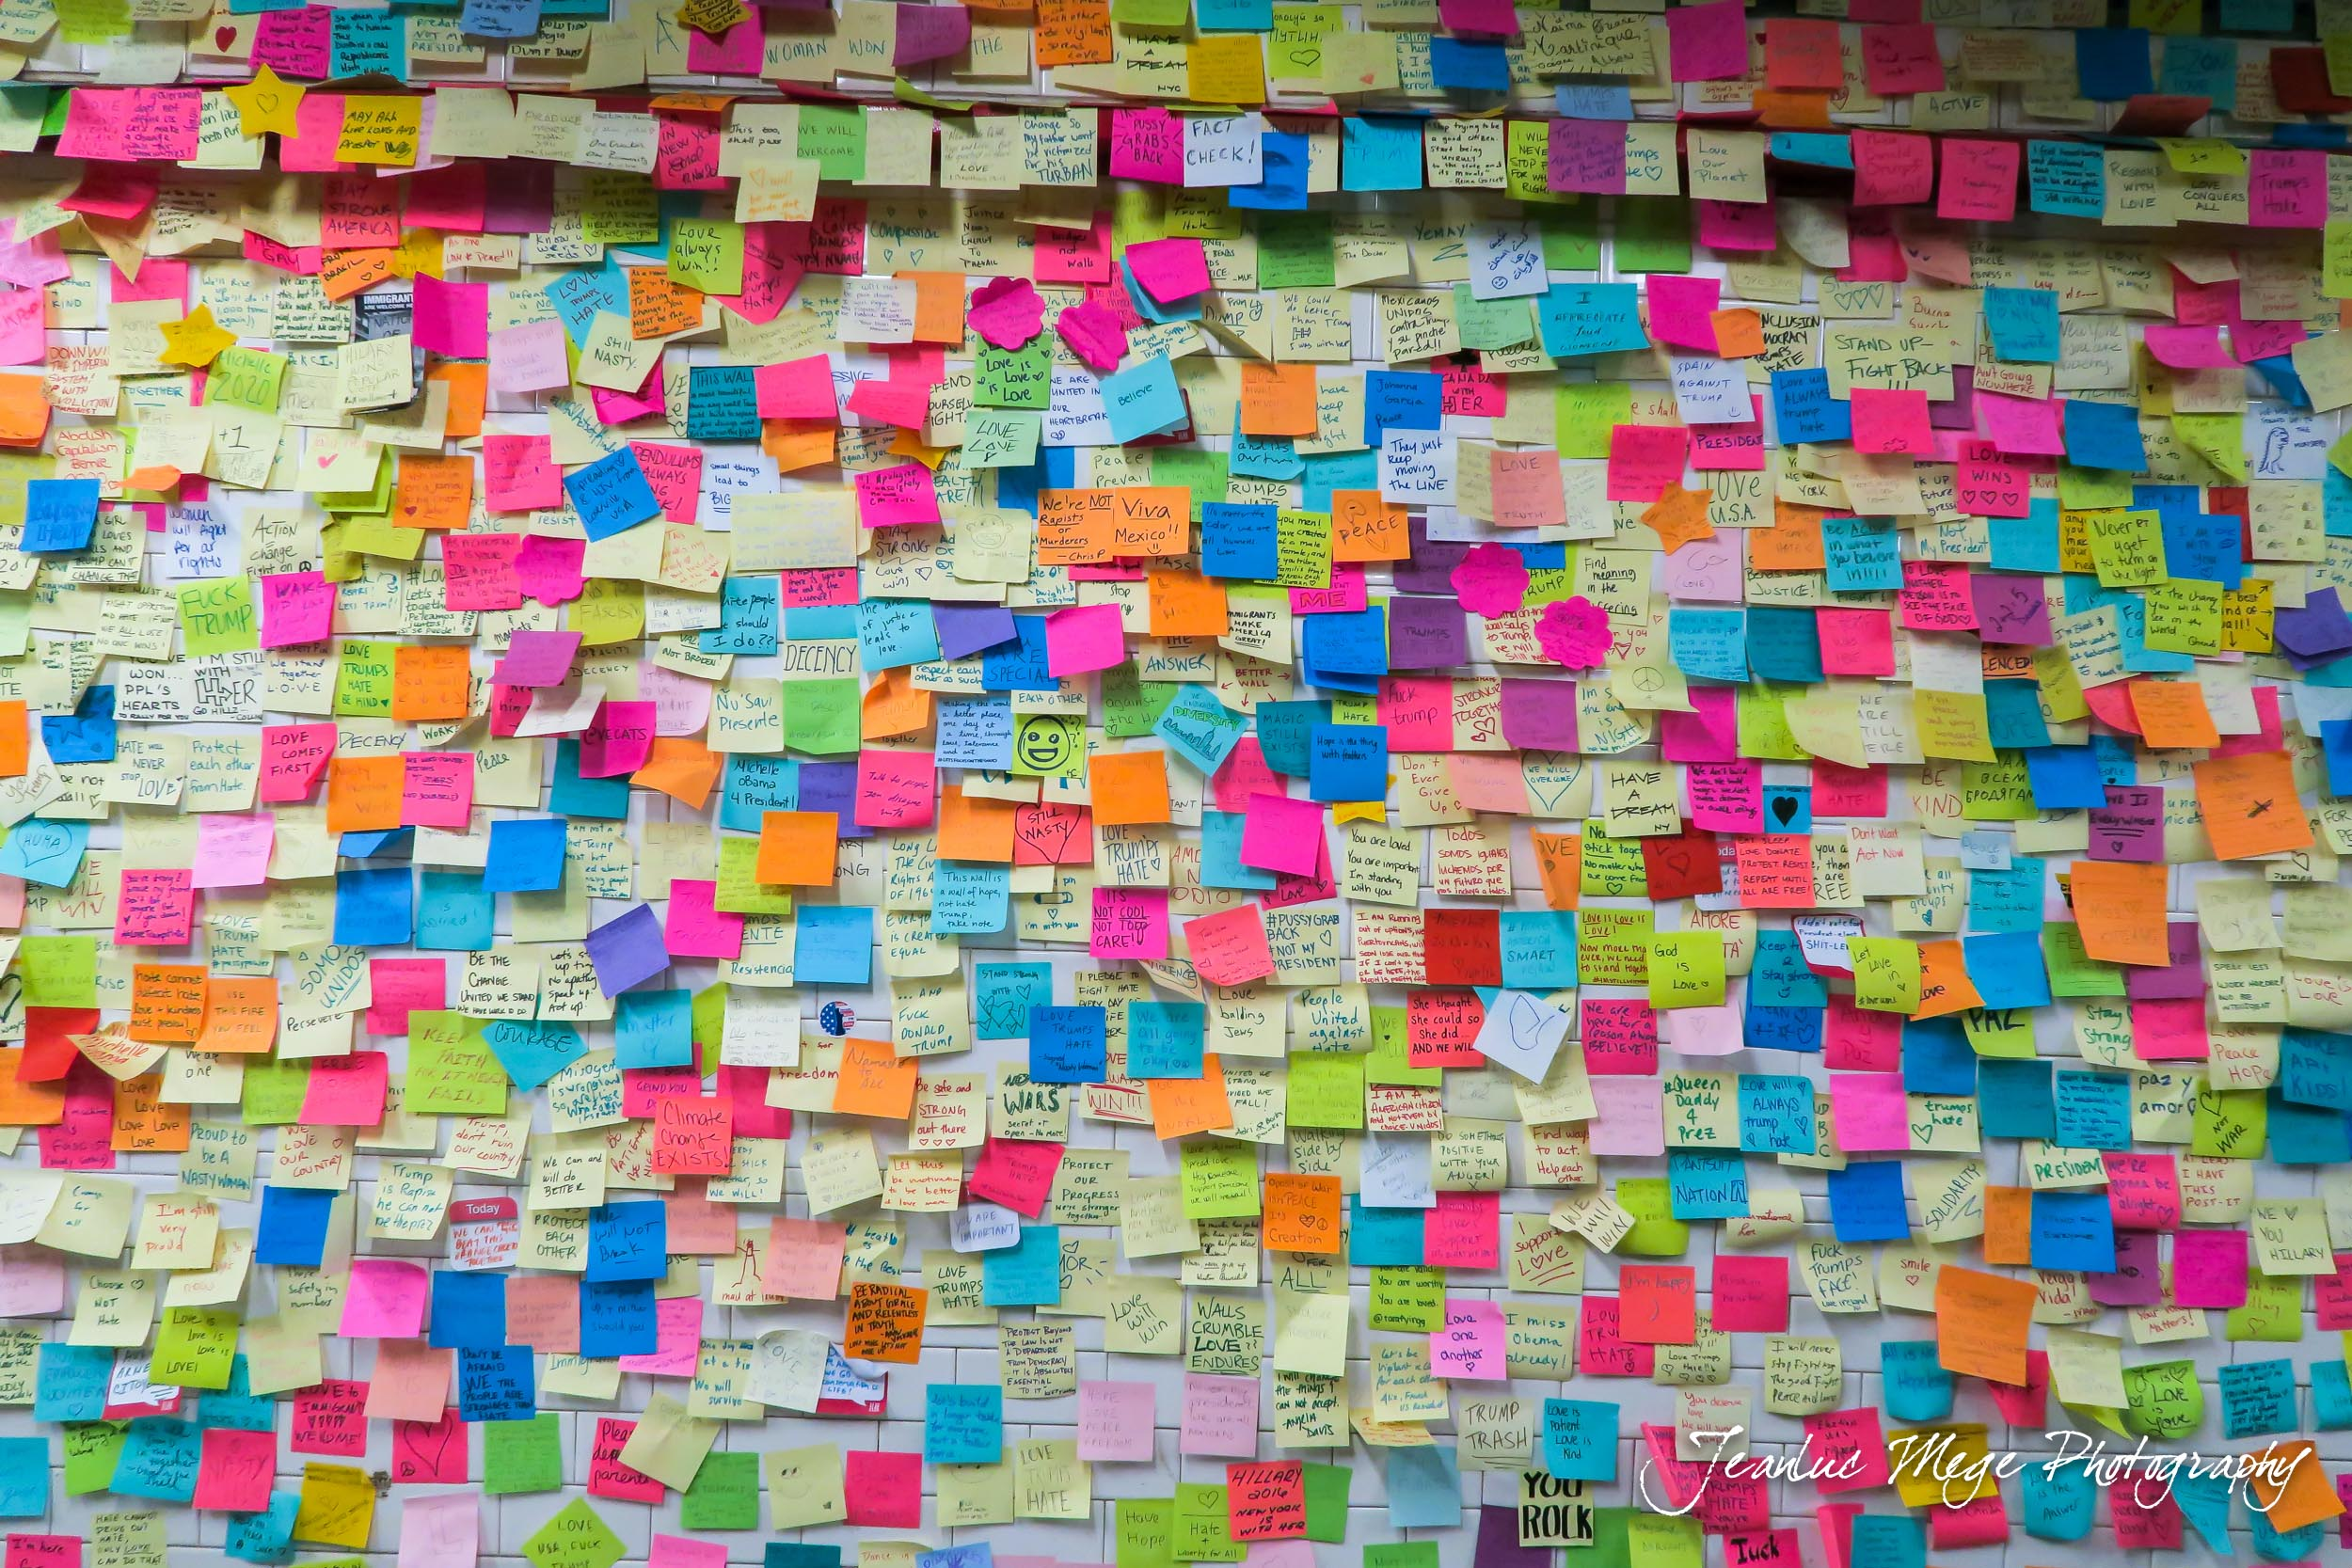 Love Wall Trump Union Square Nyc@jeanlucmege-0027.jpg